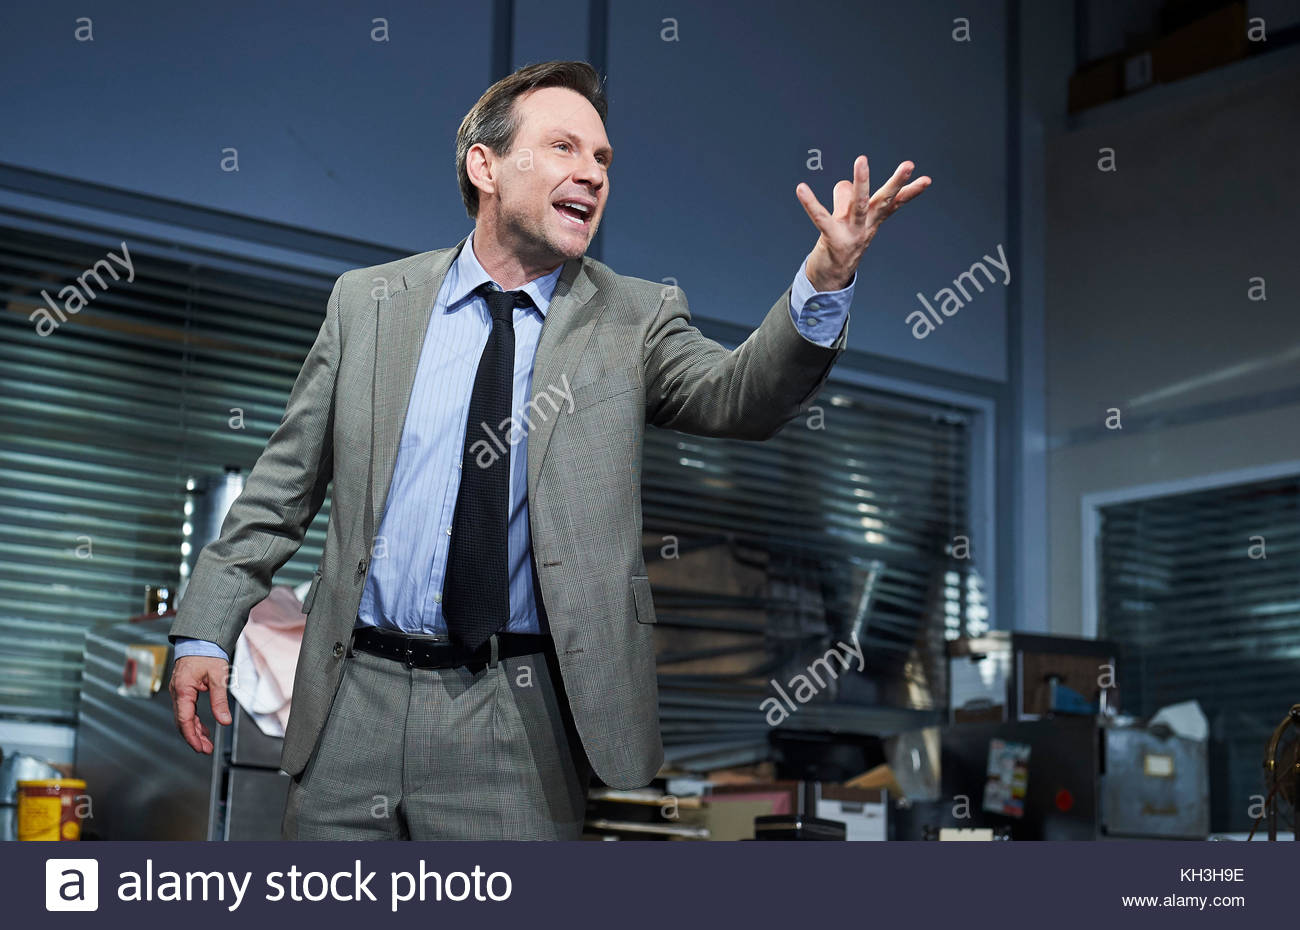 Glengarry Glen Ross by David Mamet, directed by Sam Yates. With Christian Slater as Ricky Roma. Opens at The Playhouse - Stock Image